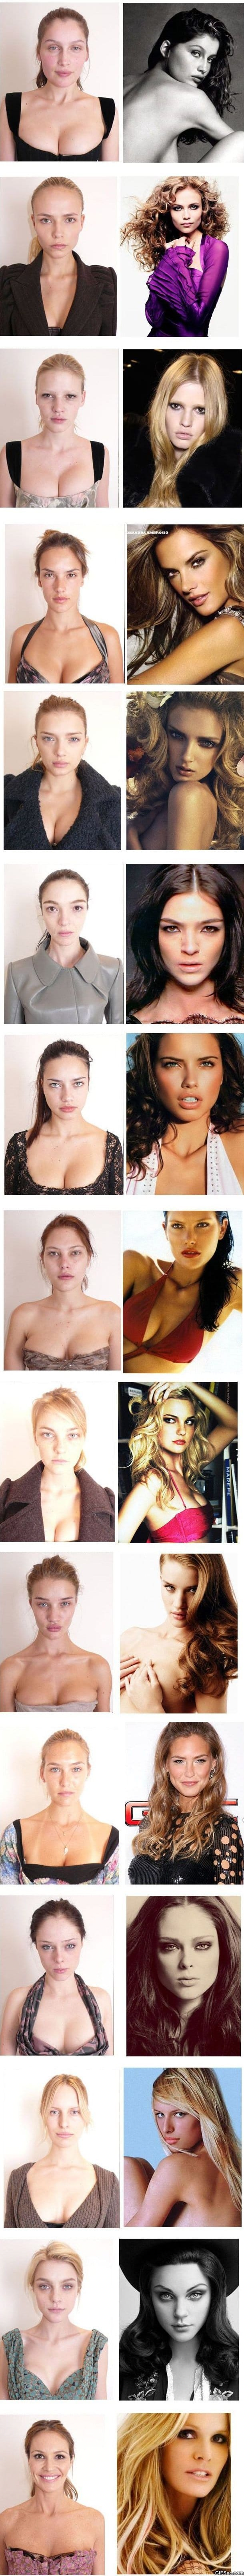 supermodels-with-makeup-vs-without-makeup-meme